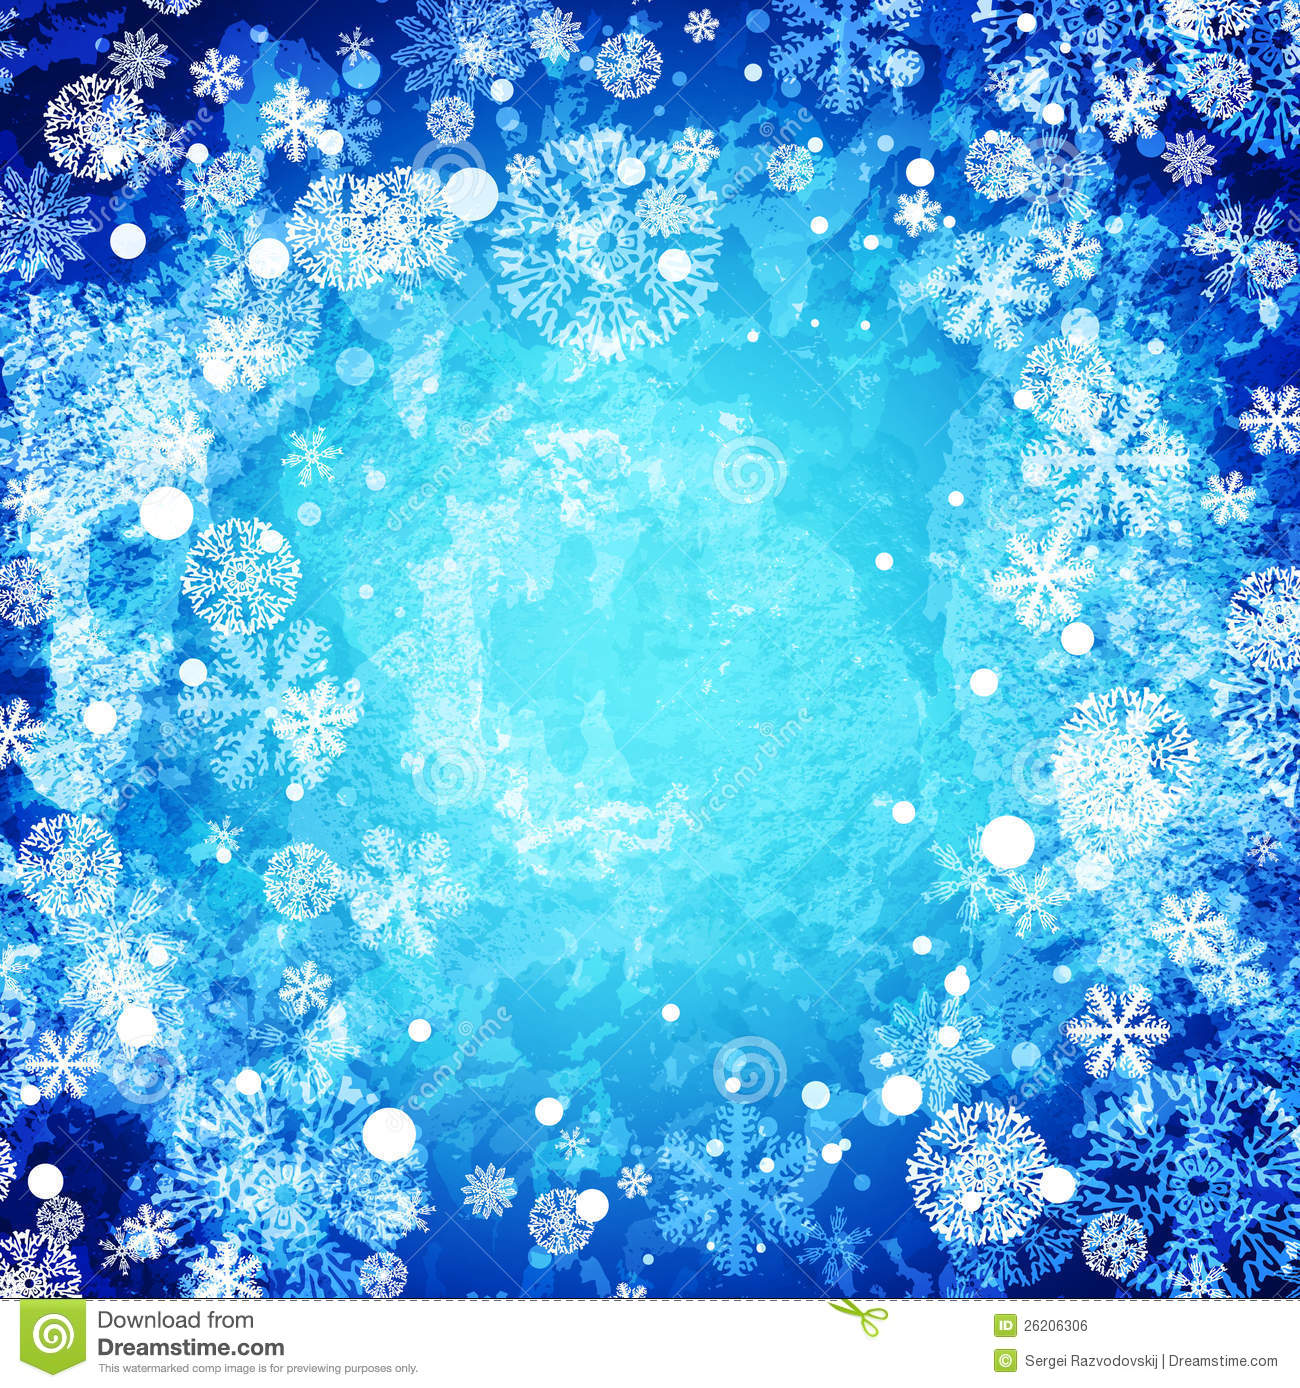 Free Falling Snow Wallpaper Download Winter Abstract Frozen Background Stock Vector Image